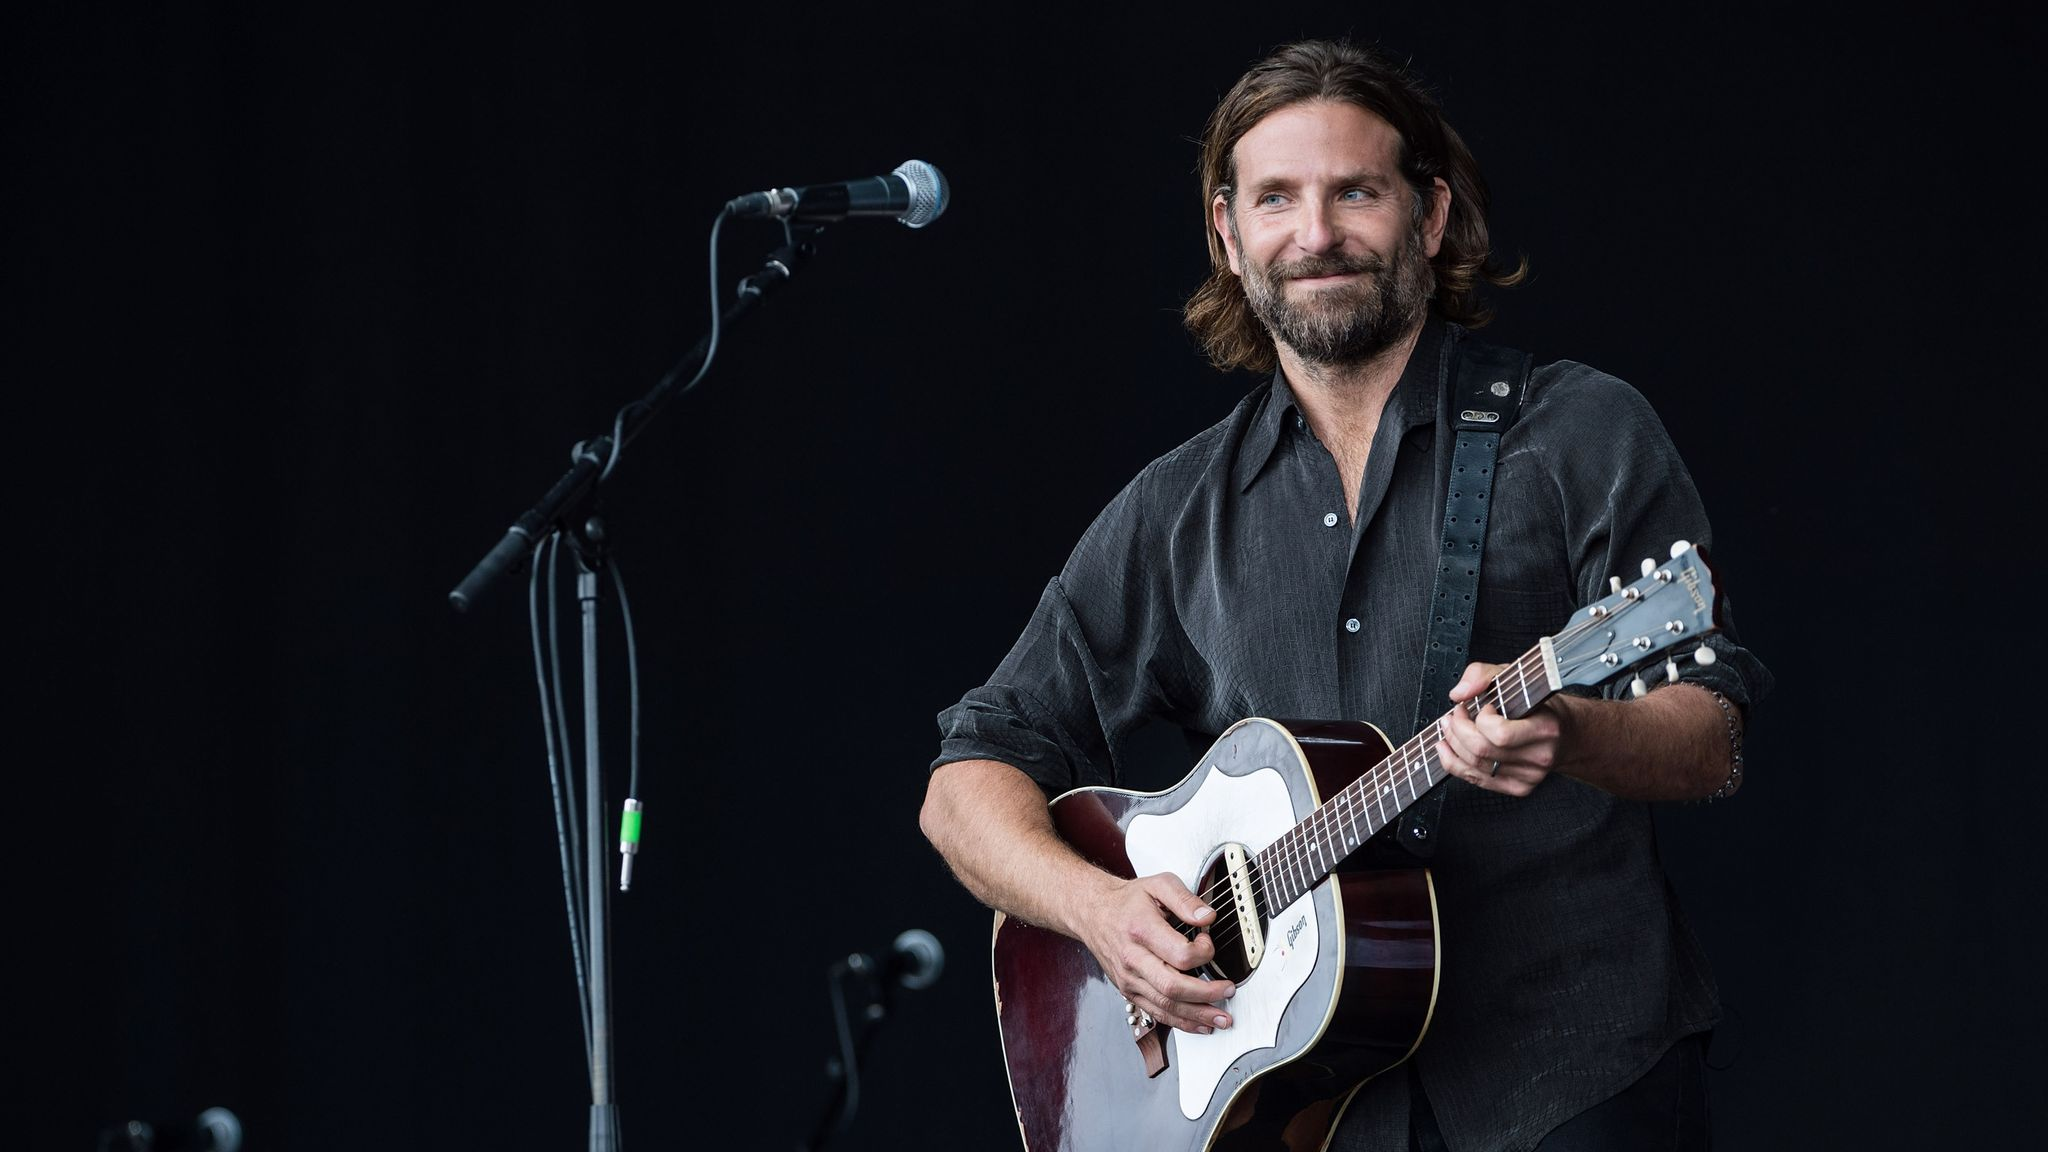 Bradley Cooper Hints At Playing Glastonbury For Real After A Star